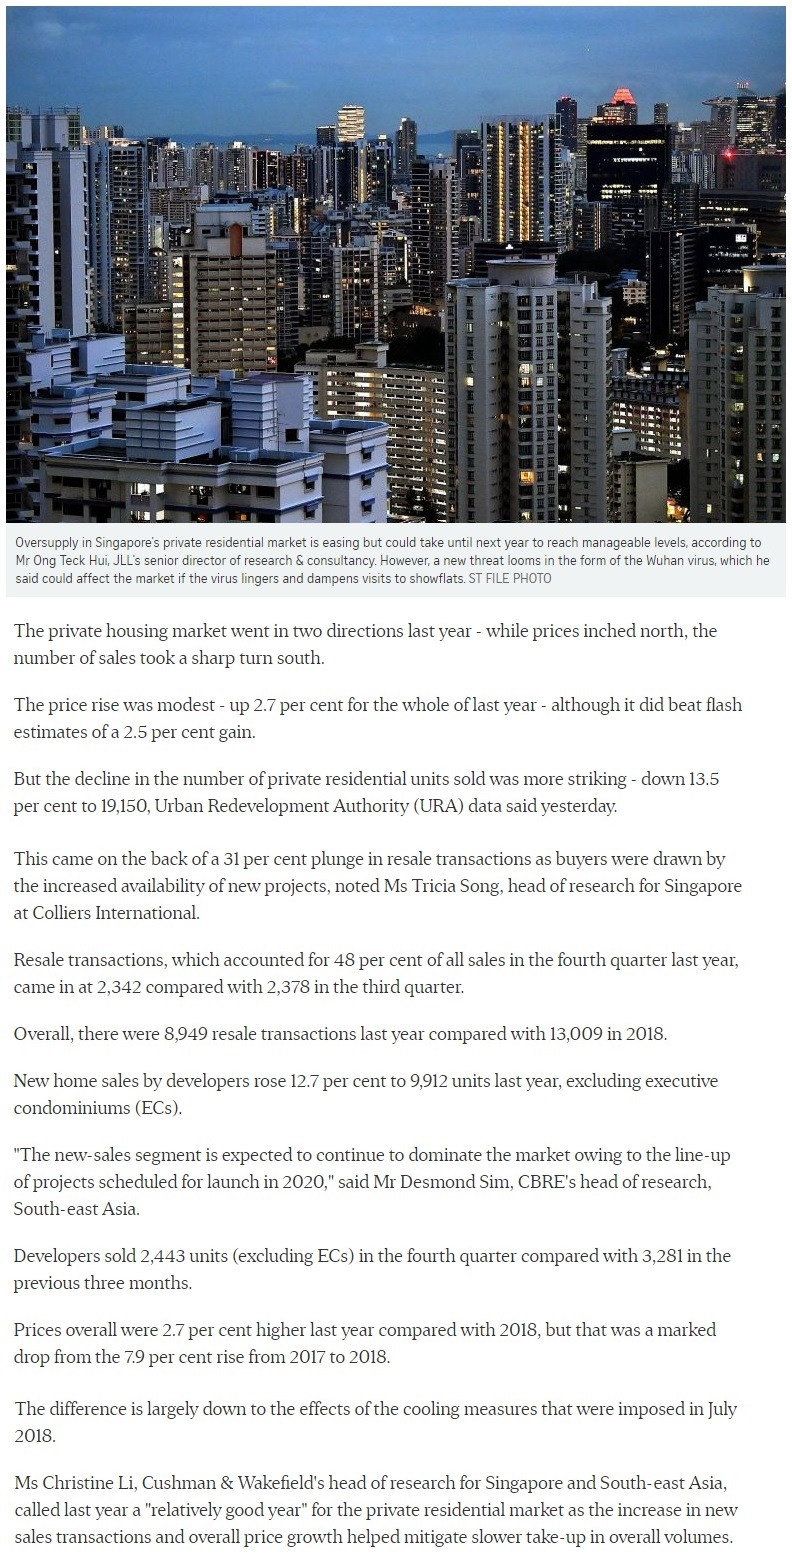 Singapore private home prices inch up 2.7% for 2019 Part 1